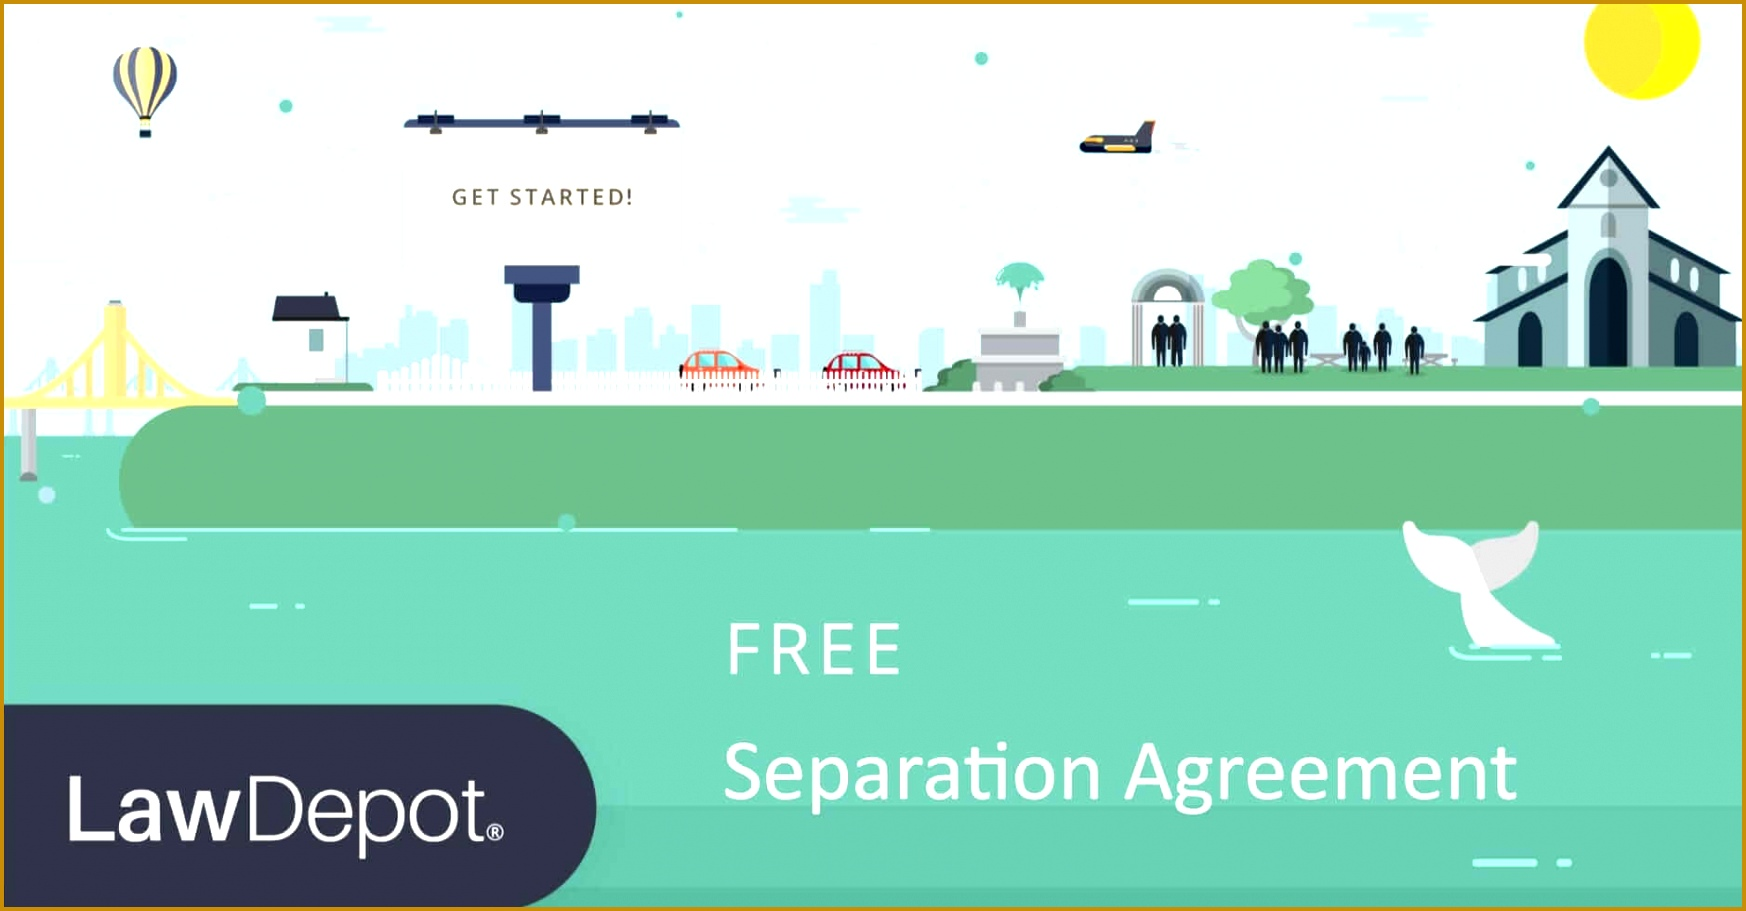 separation agreement OG 9111746